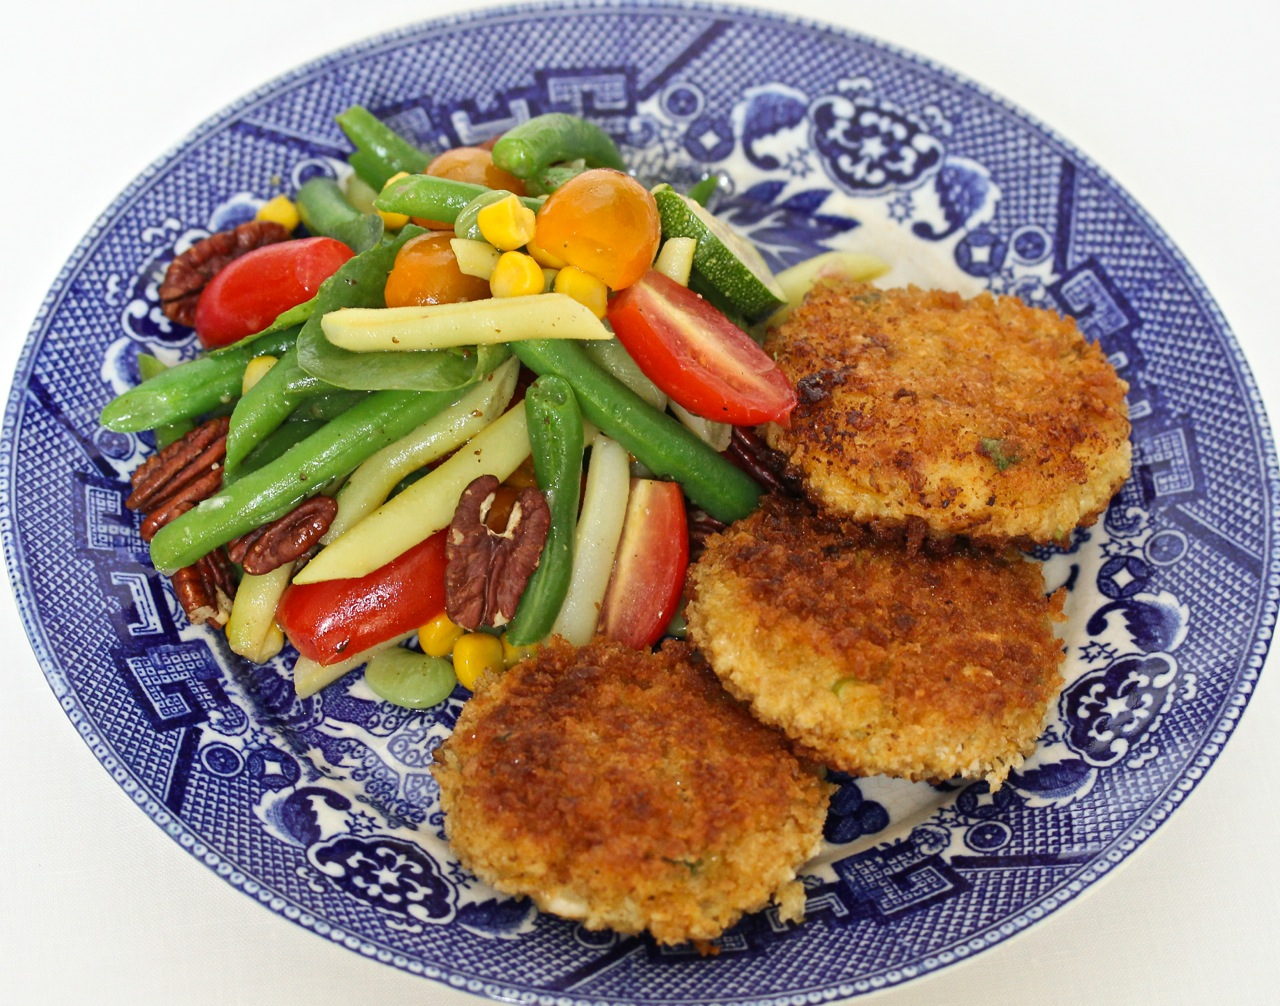 Maryland Blue Crab Cakes with Summer Succotash Salad